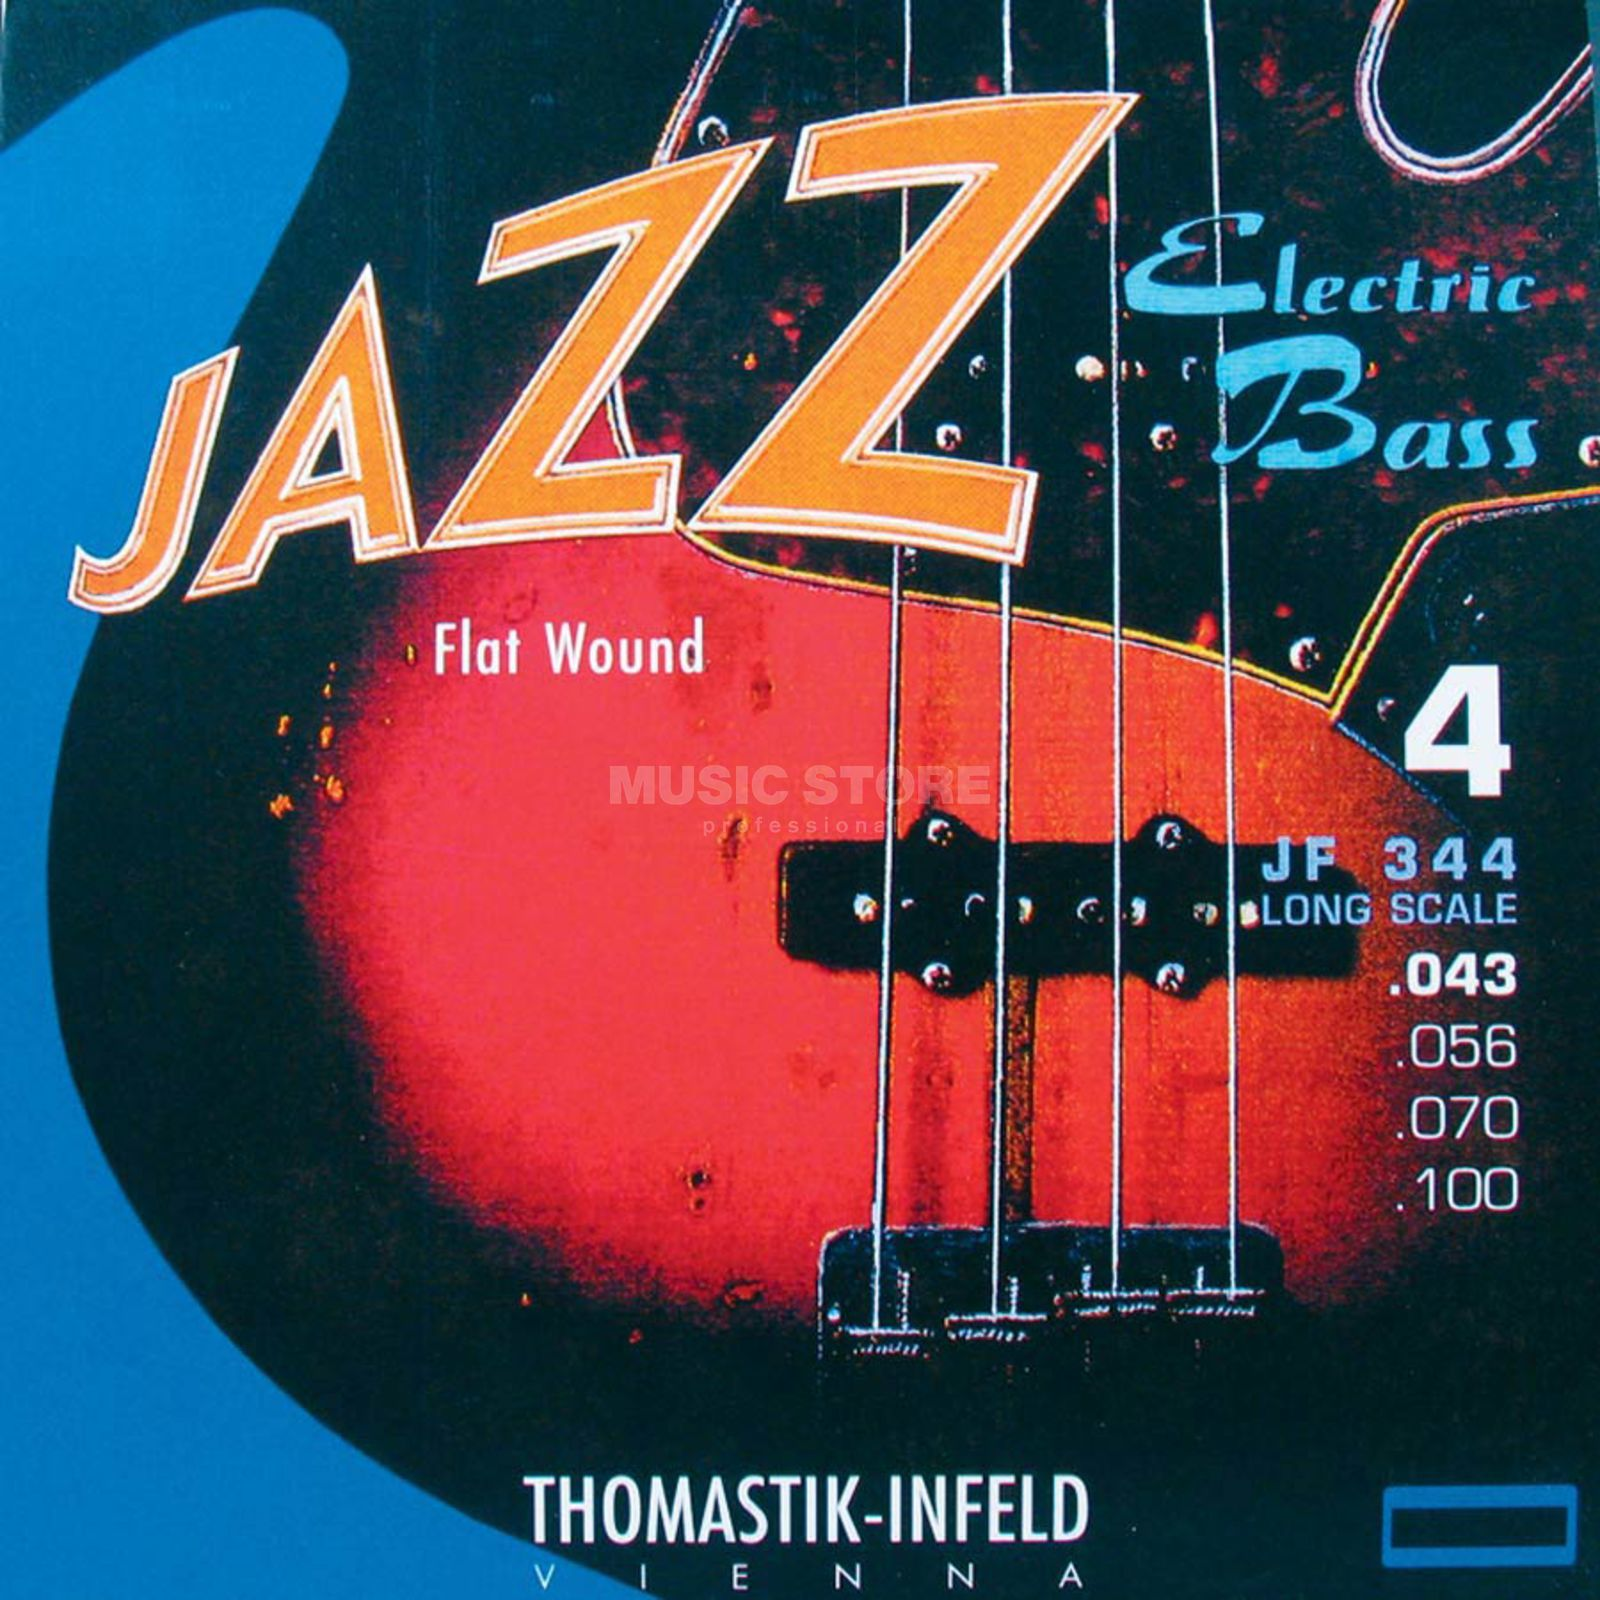 Thomastik 4 Bass Strings JF 344 43-100 Nickel Flat Wound Zdjęcie produktu